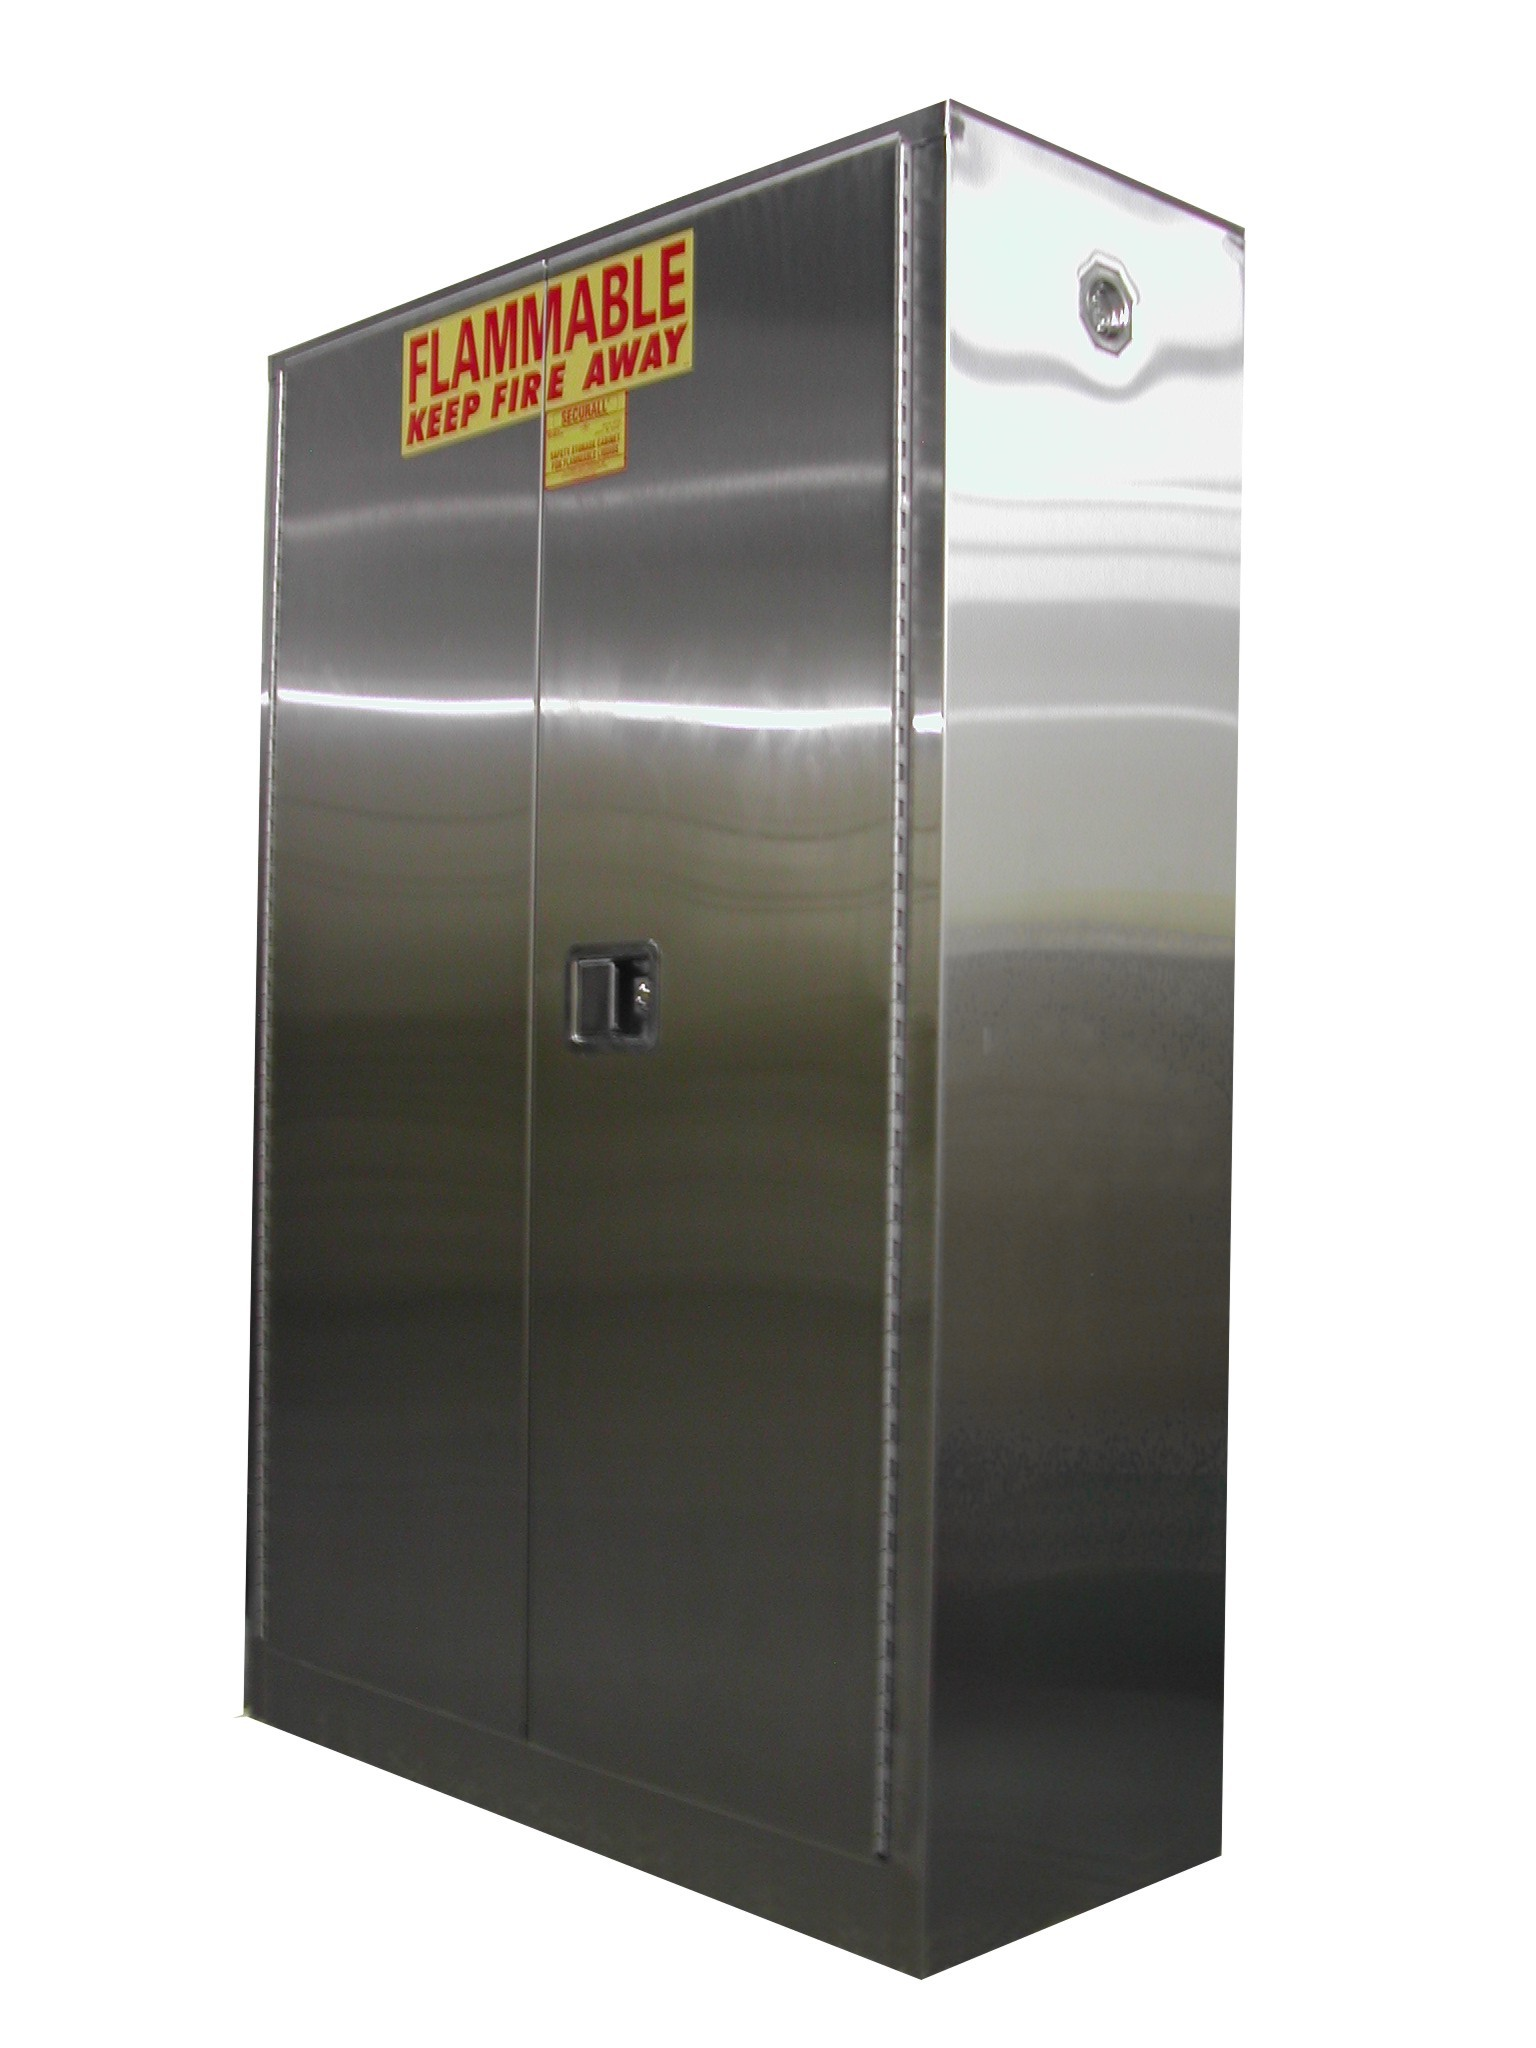 A145-SS - Stainless Steel Flammable Storage Cabinet - 45 Gal. Storage Capacity